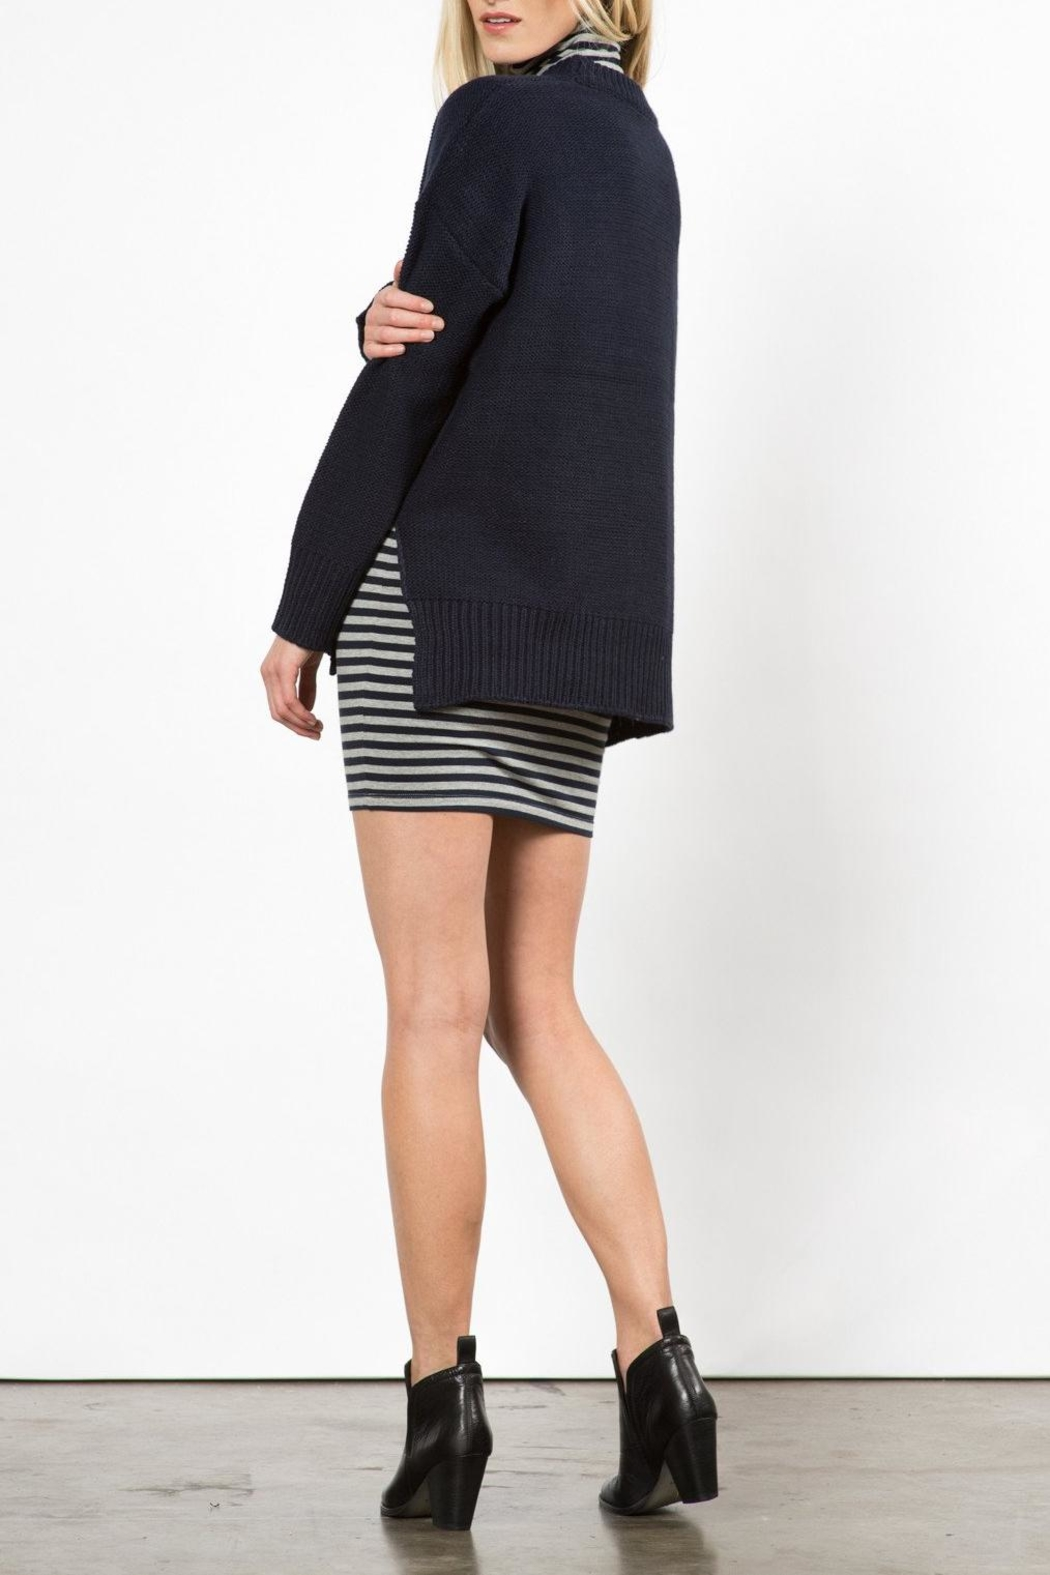 Knot Sisters Neilson Navy Sweater - Side Cropped Image